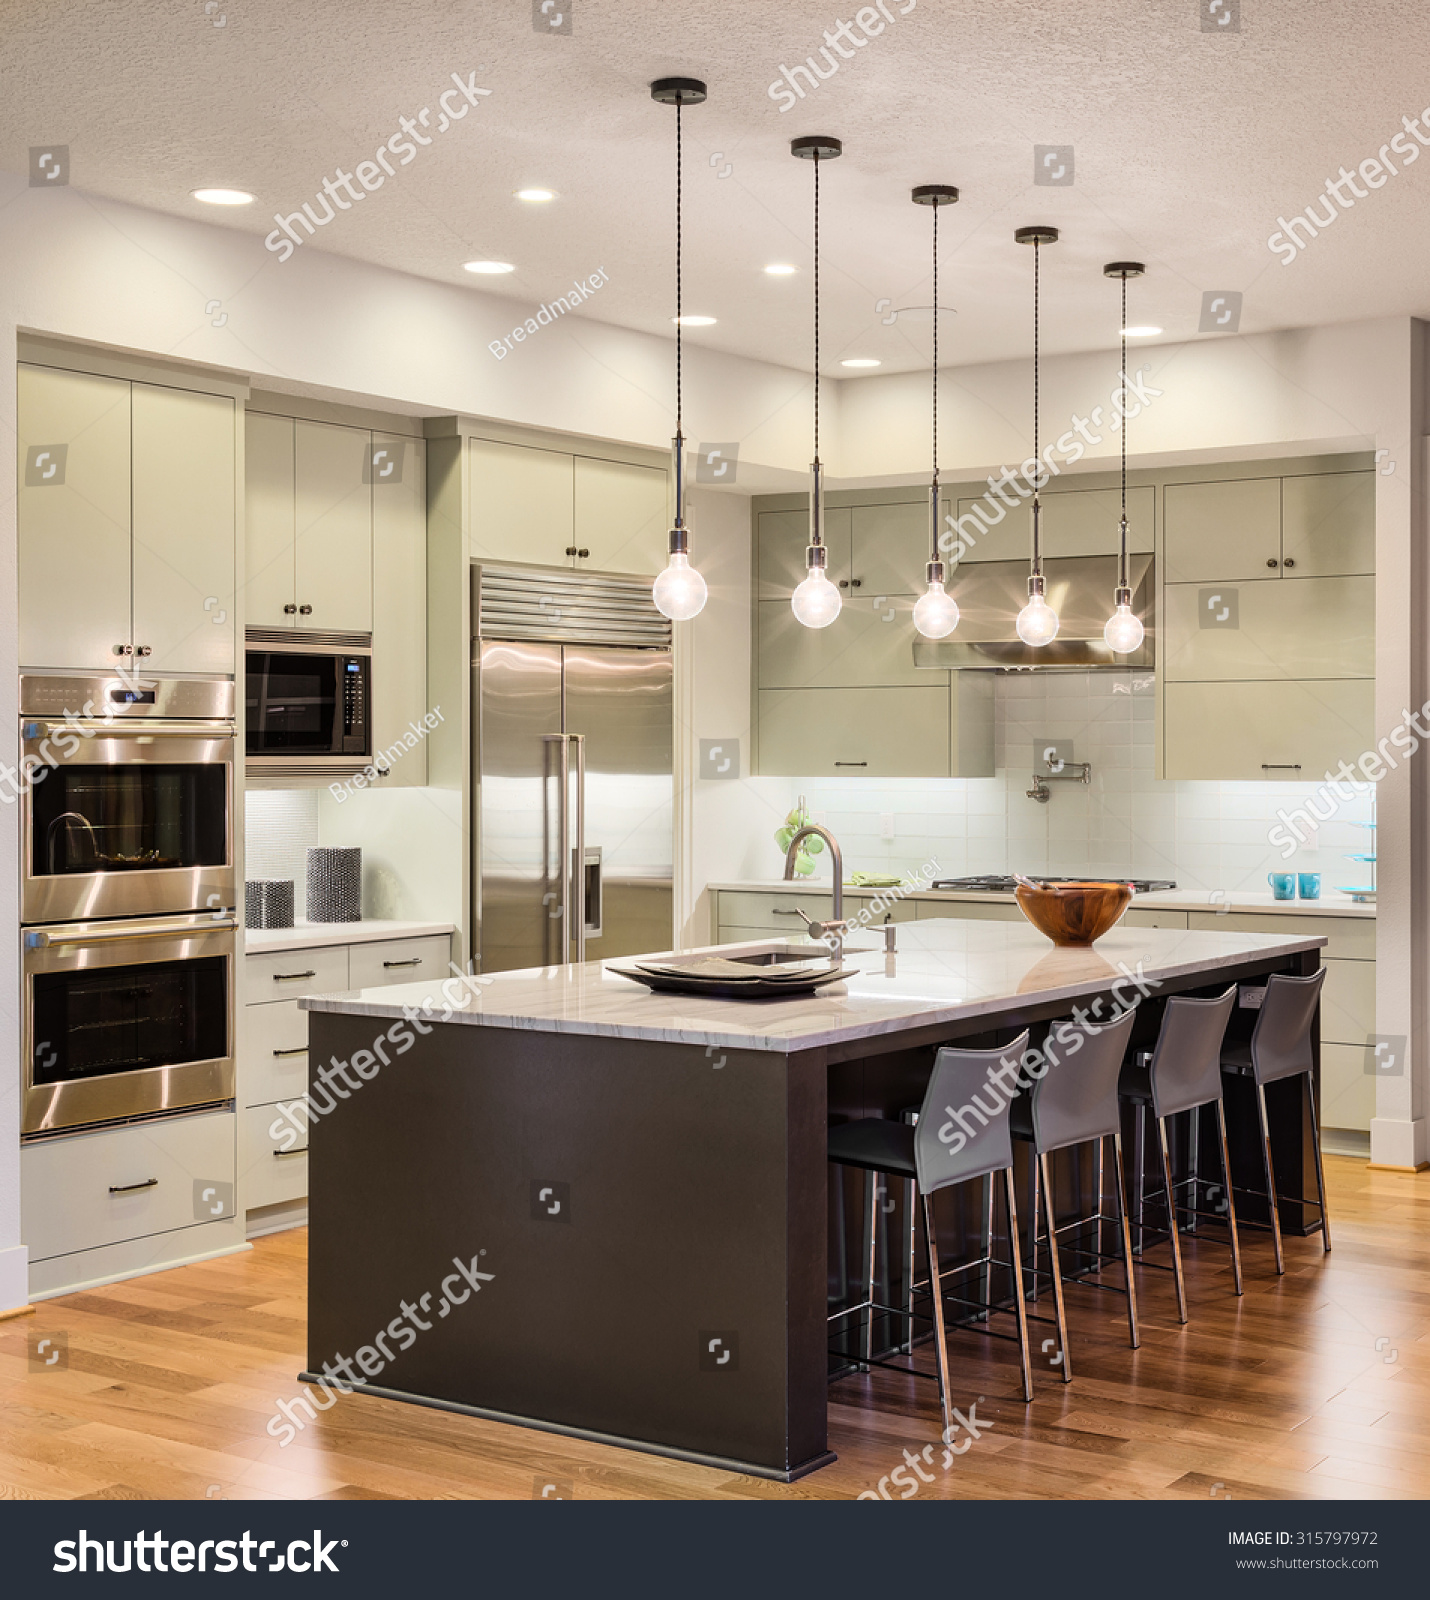 Stainless Steel Kitchen Pendant Light Beautiful Kitchen Interior New Luxury Home Stock Photo 315797972